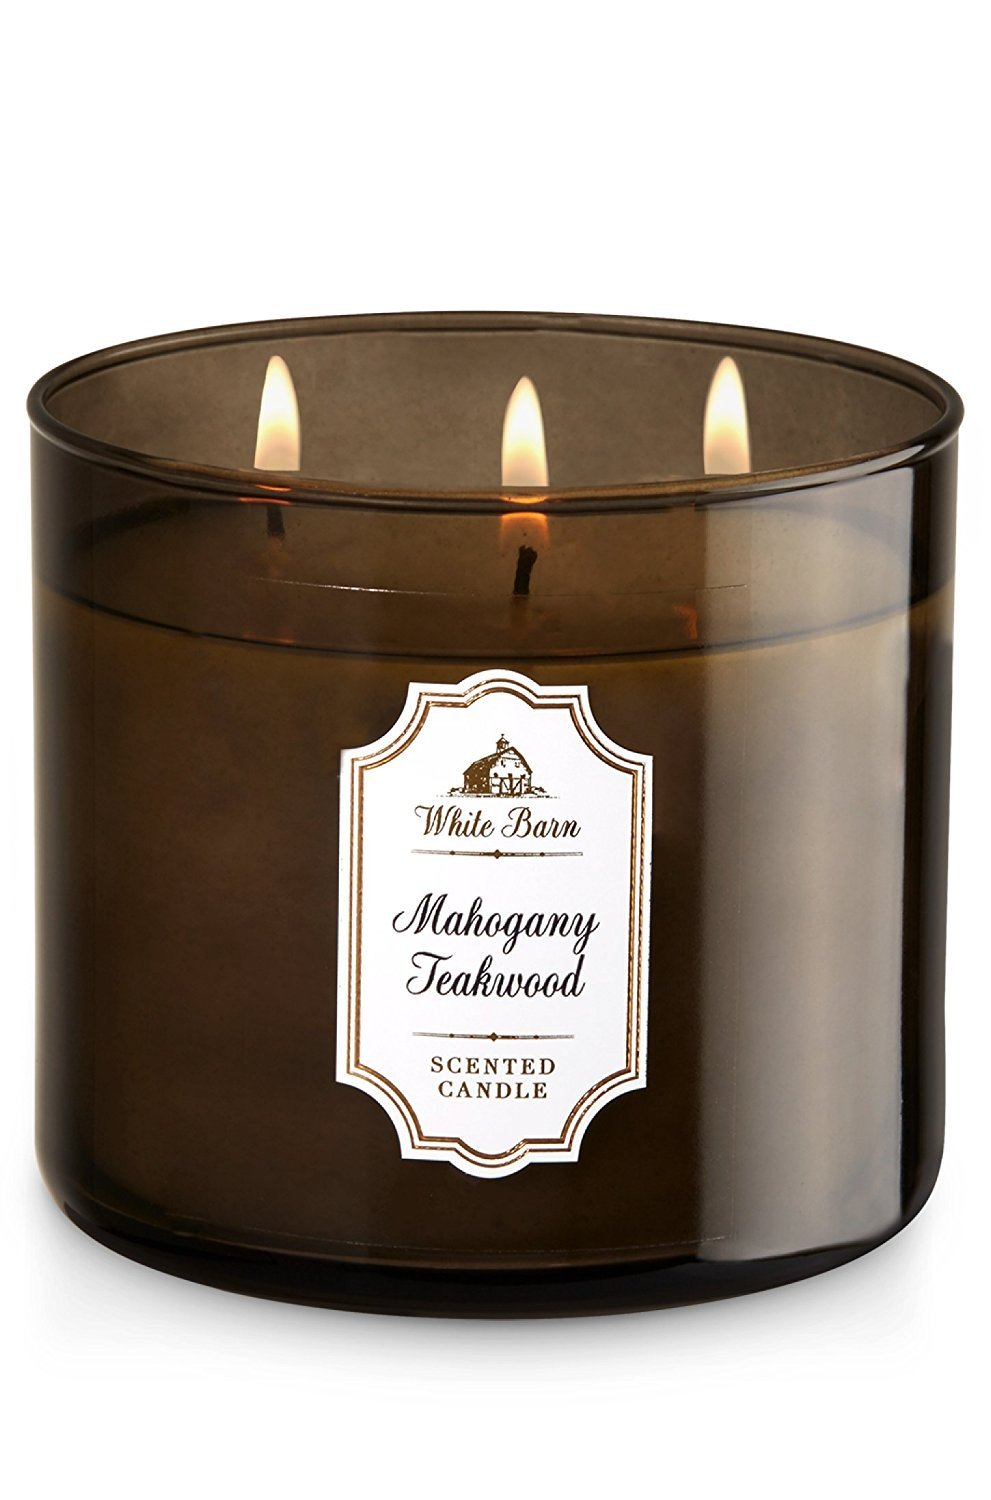 Details About Bath Body Works White Barn 3 Wick Candle Mahogany Teakwood